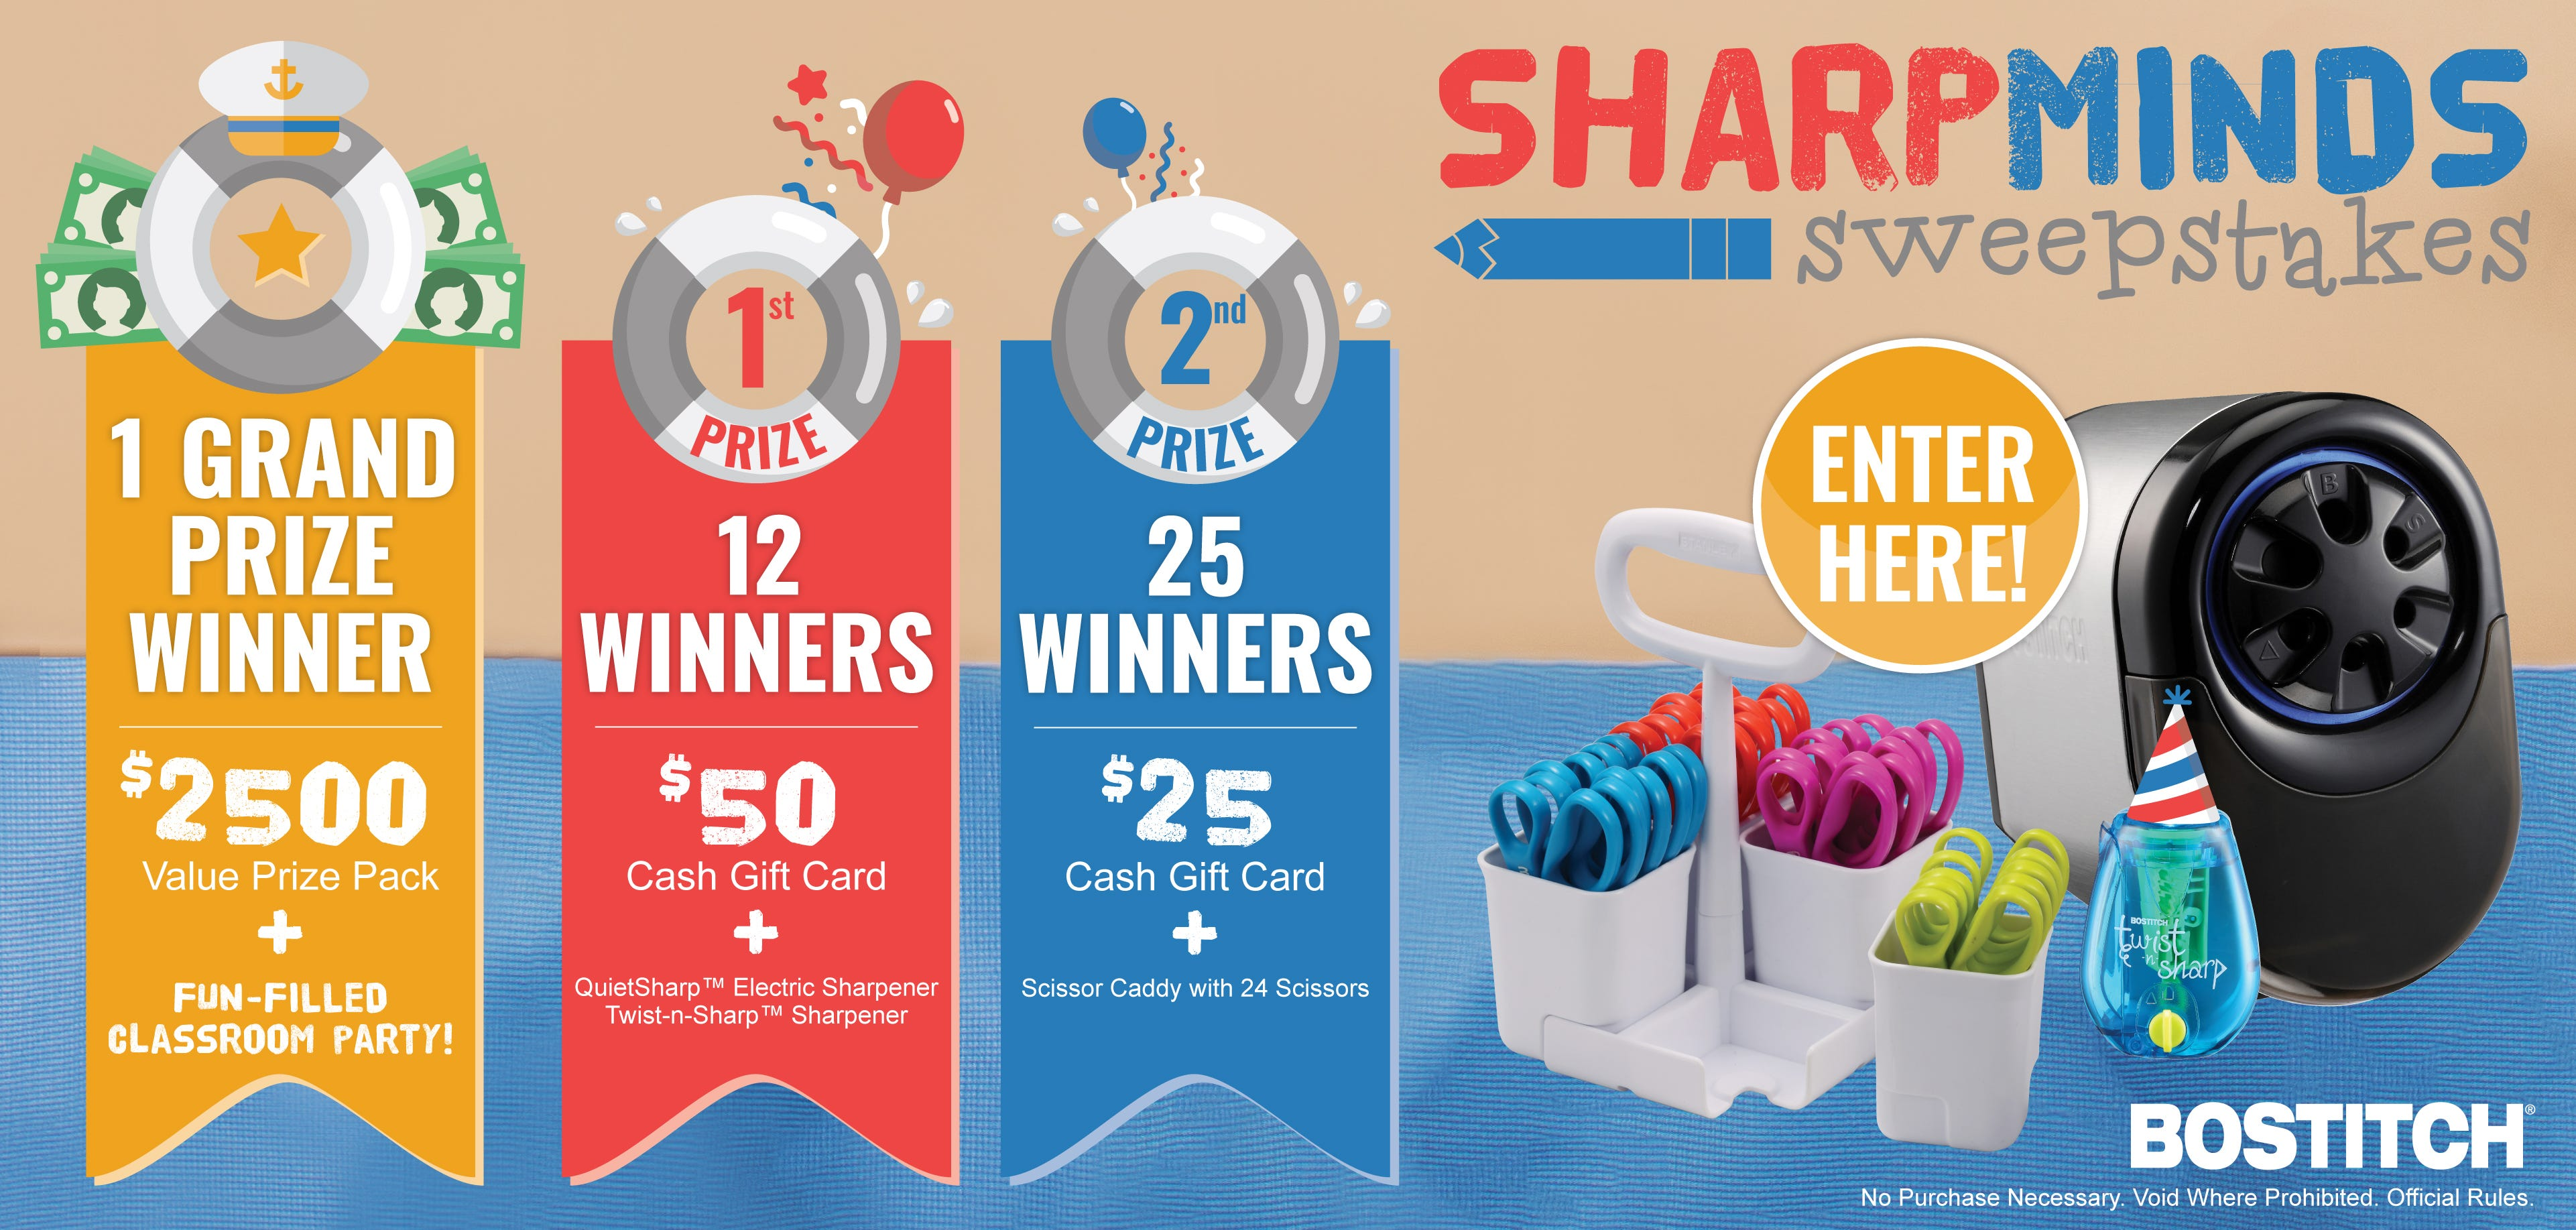 2017-2018 Sharp Minds Sweepstakes